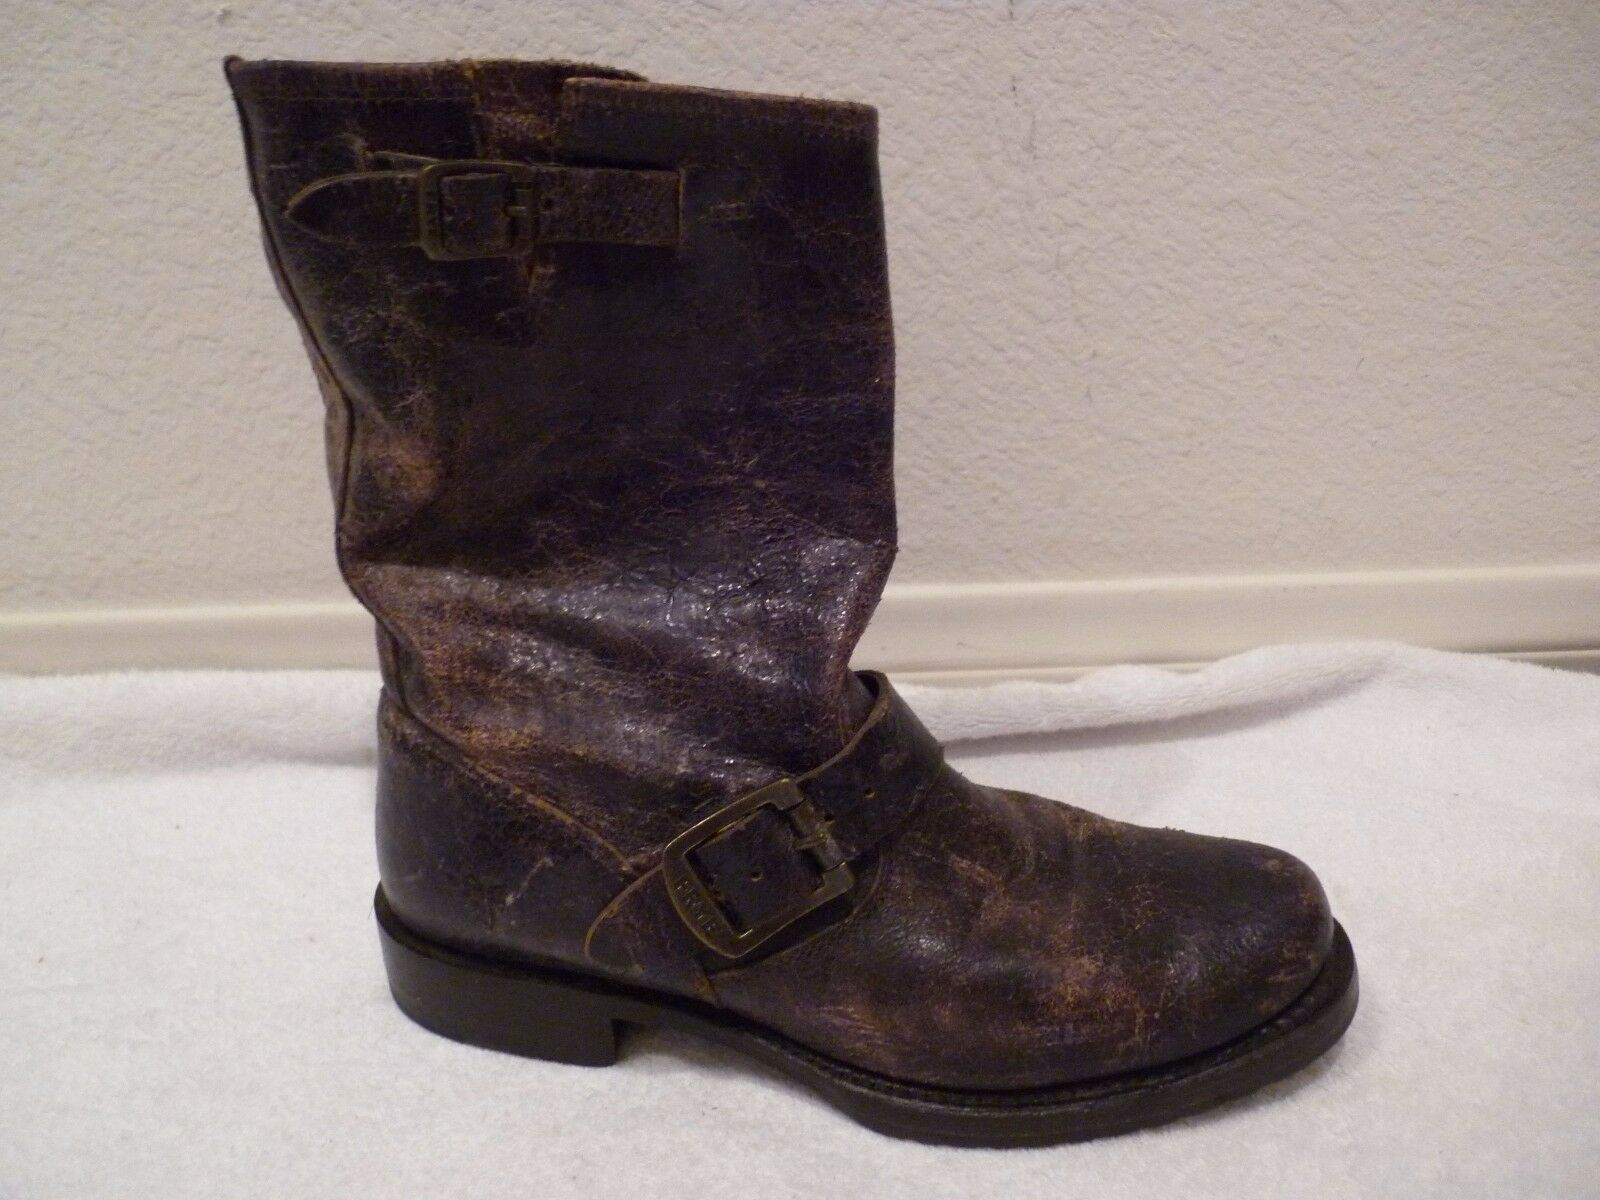 Frye Phillip Studded Harness Glazed Crackle Brown Leather ankle Boots SZ 6.5 EUC